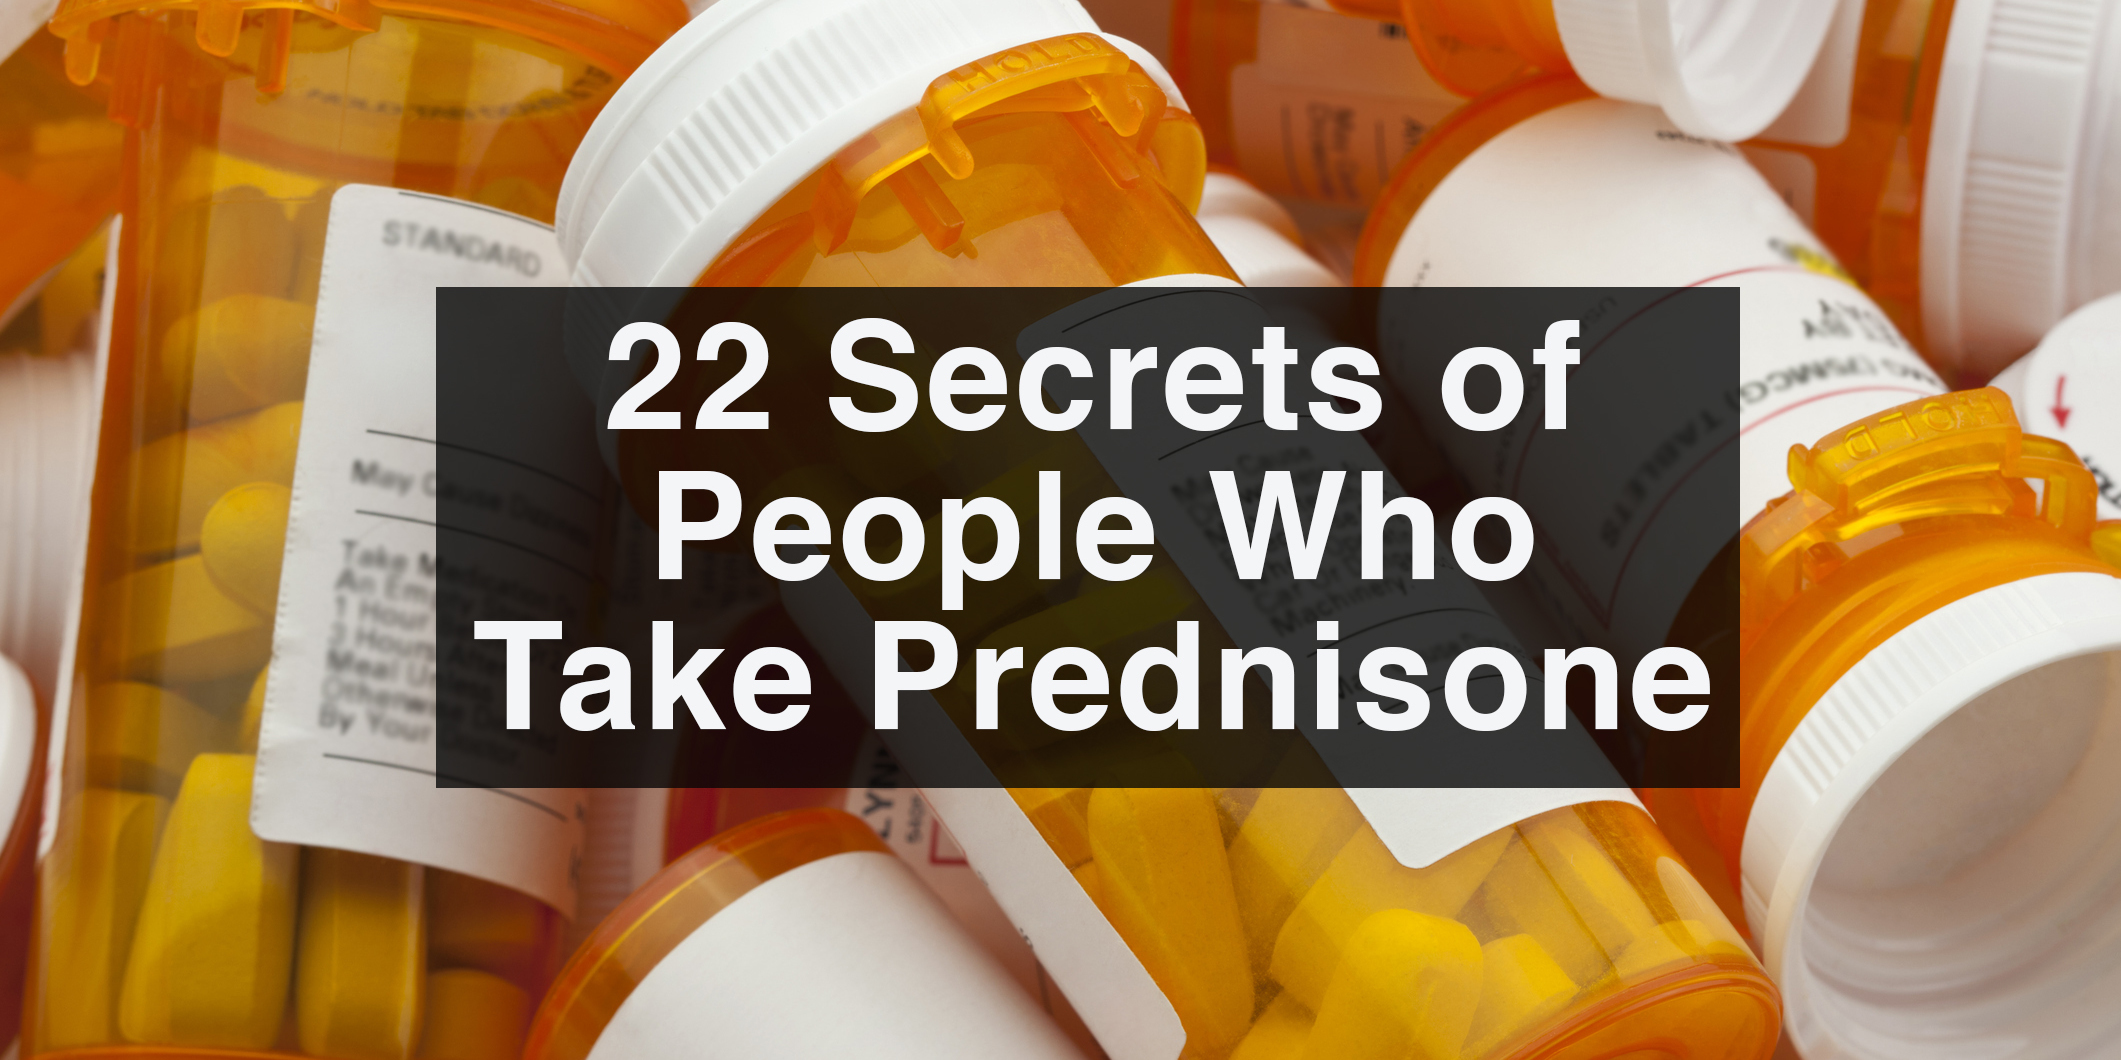 22 Secrets of People Who Take Prednisone | The Mighty